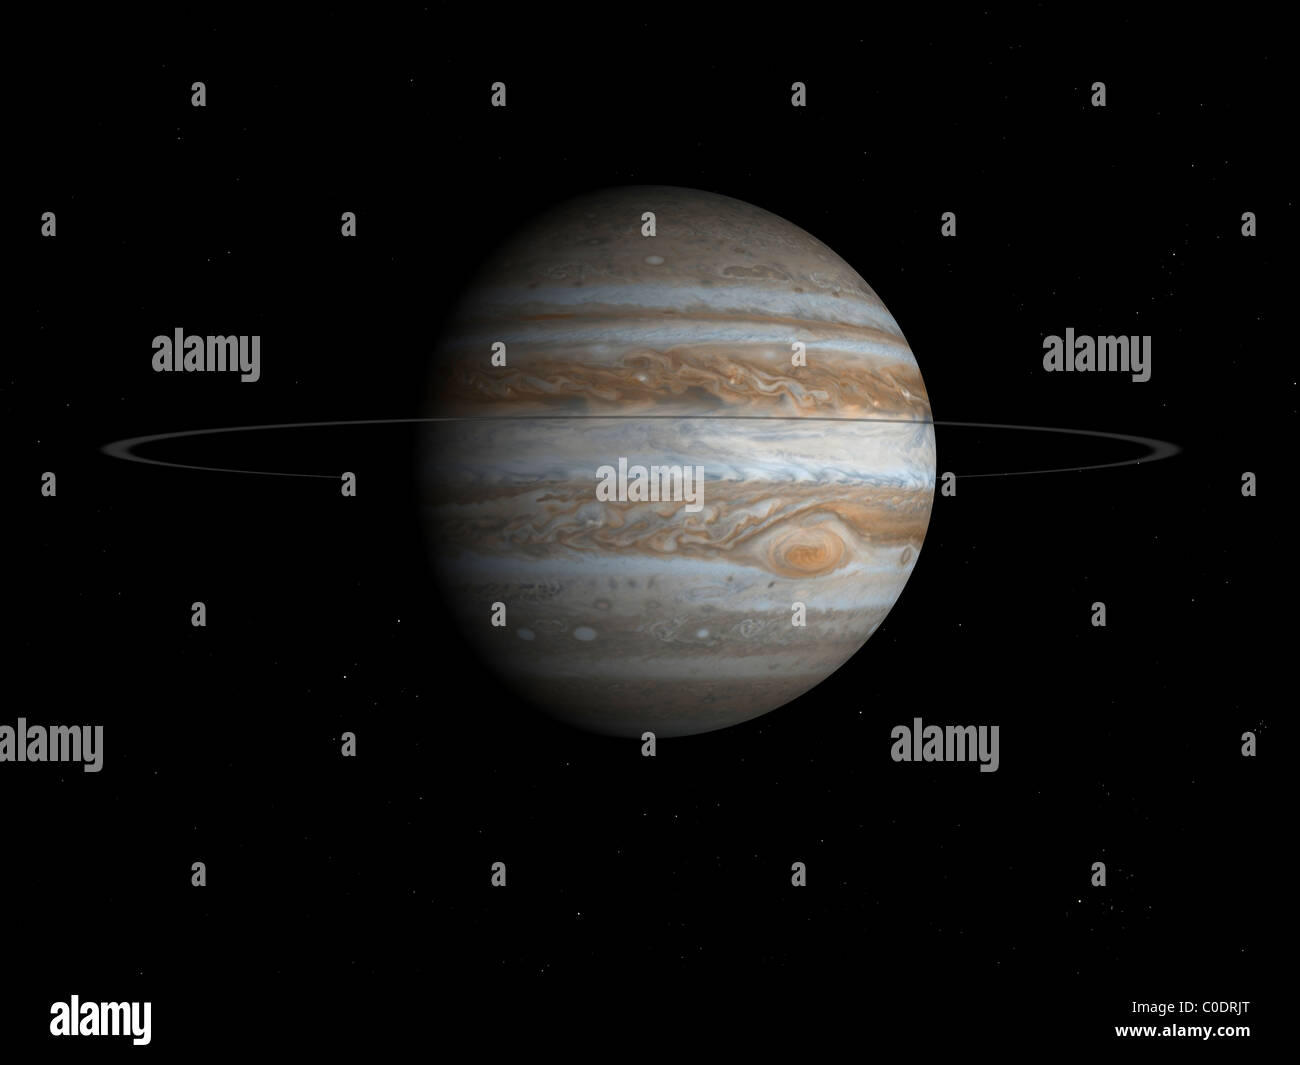 Artist's concept of the planet Jupiter. - Stock Image